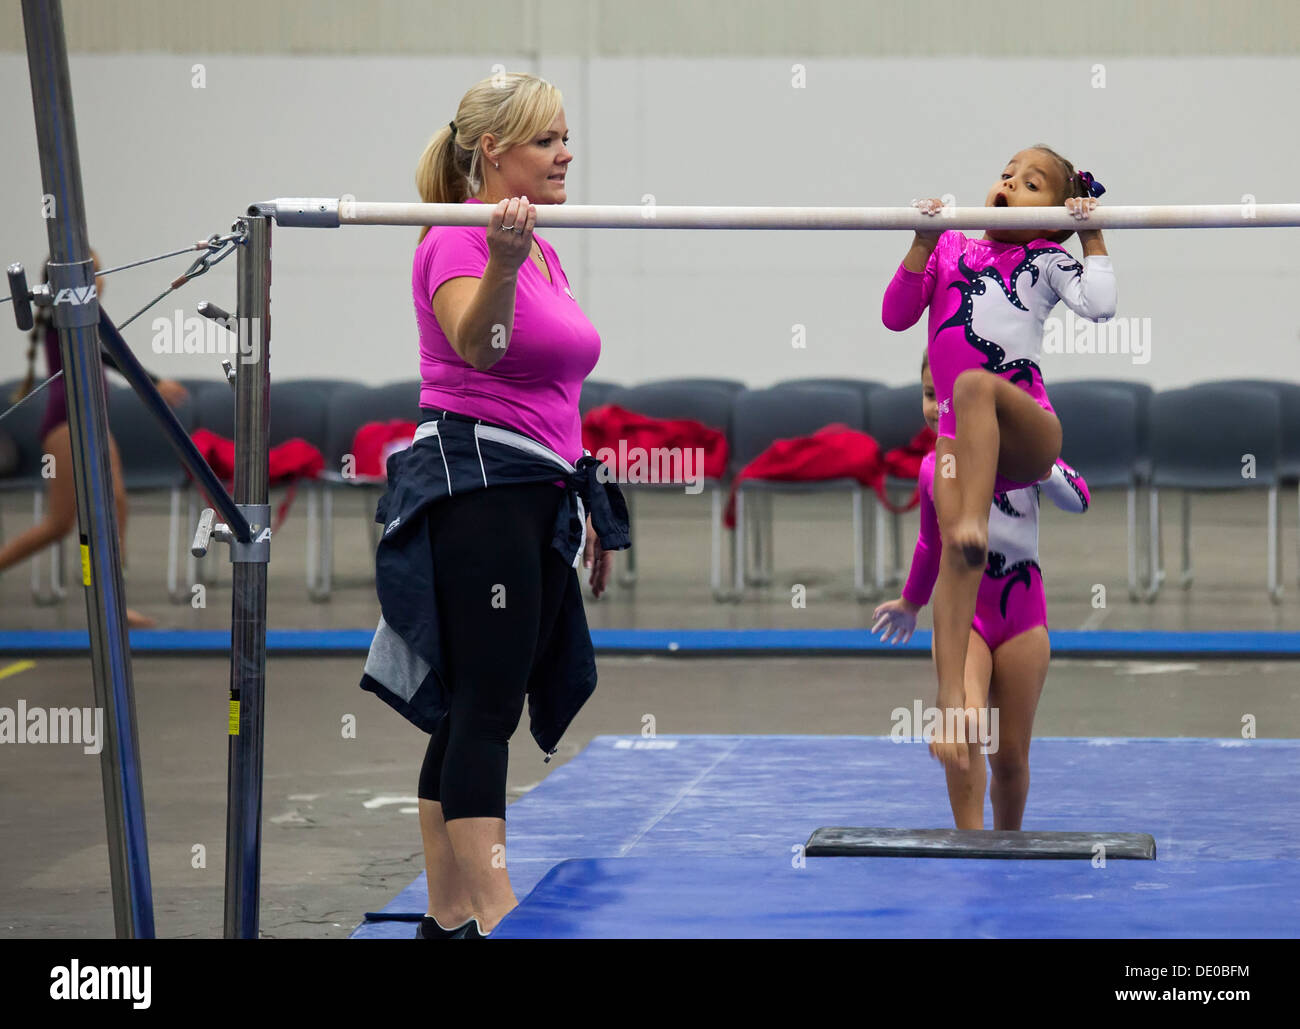 Detroit, Michigan - A coach watches as girls warm up on the parallel bars before competition in the AAU Junior Olympic Games. - Stock Image